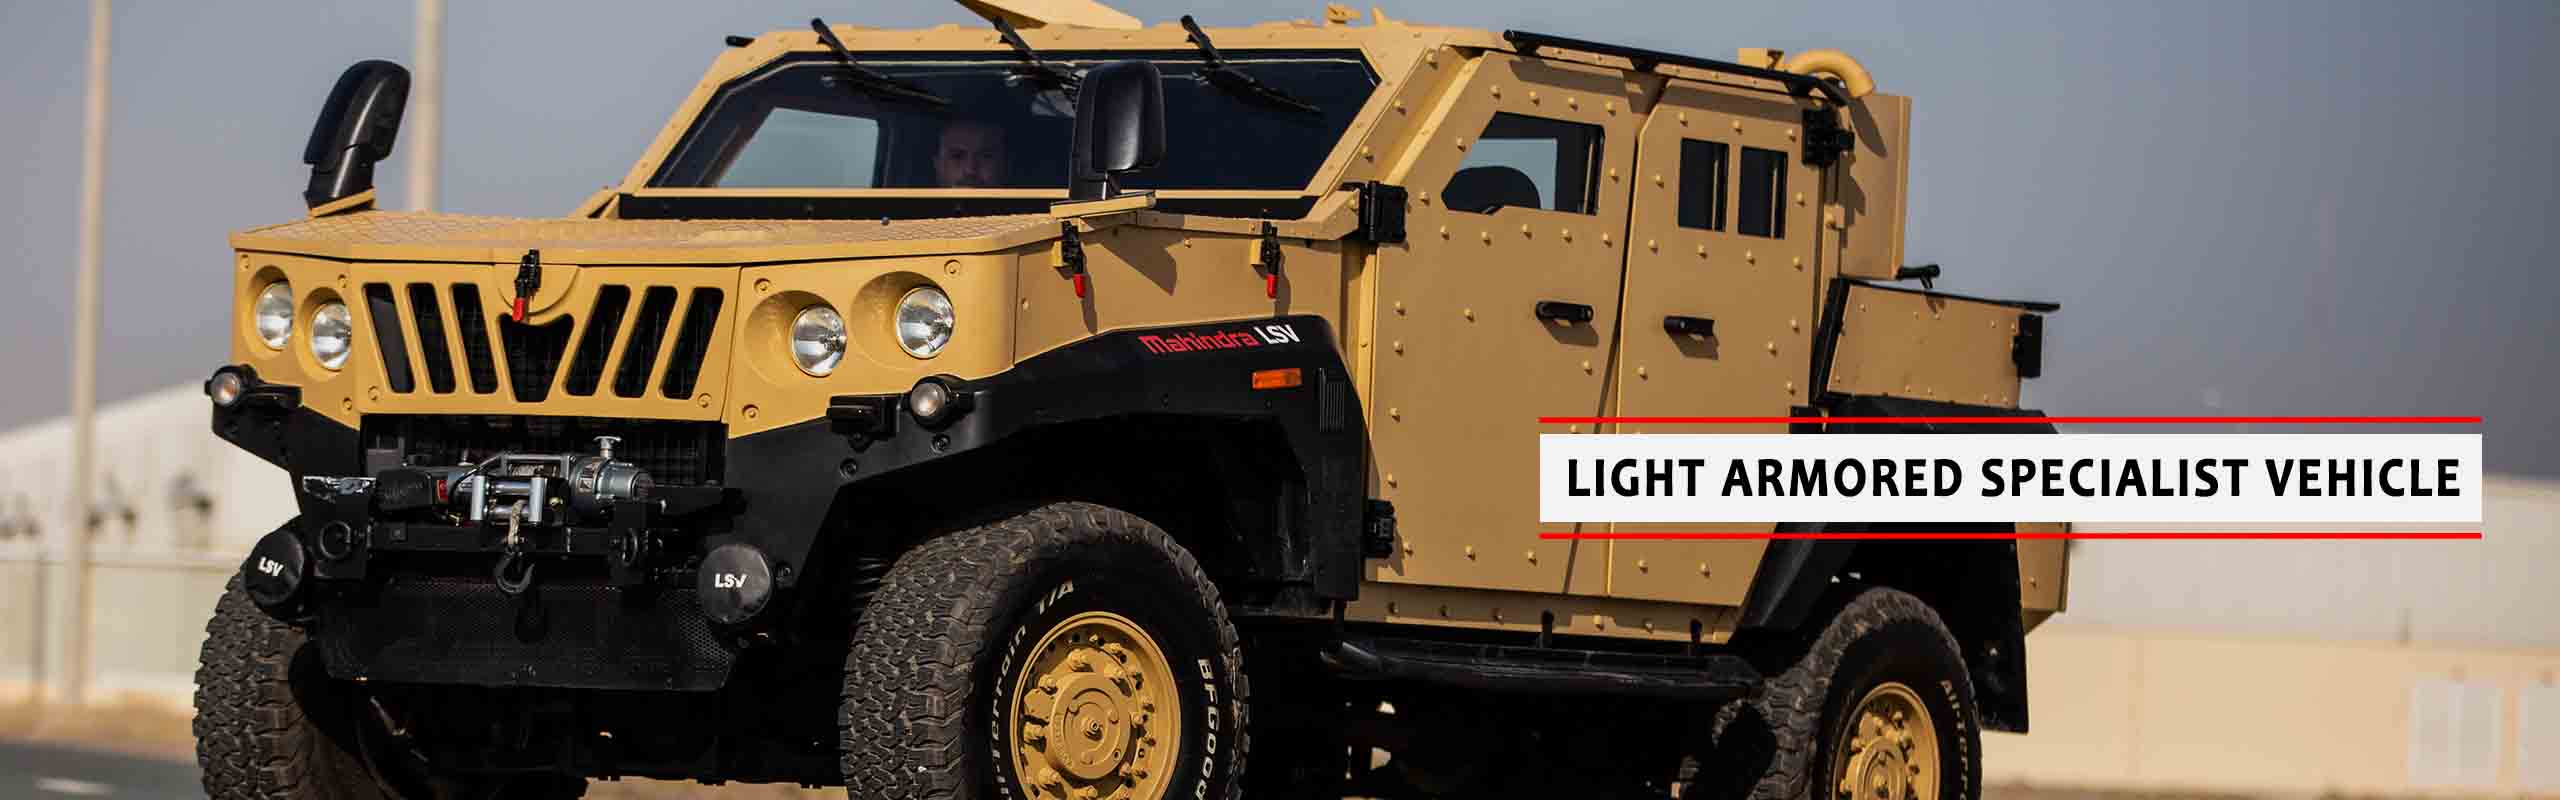 Mahindra Armoured UAE - Jordan| Mahindra Light